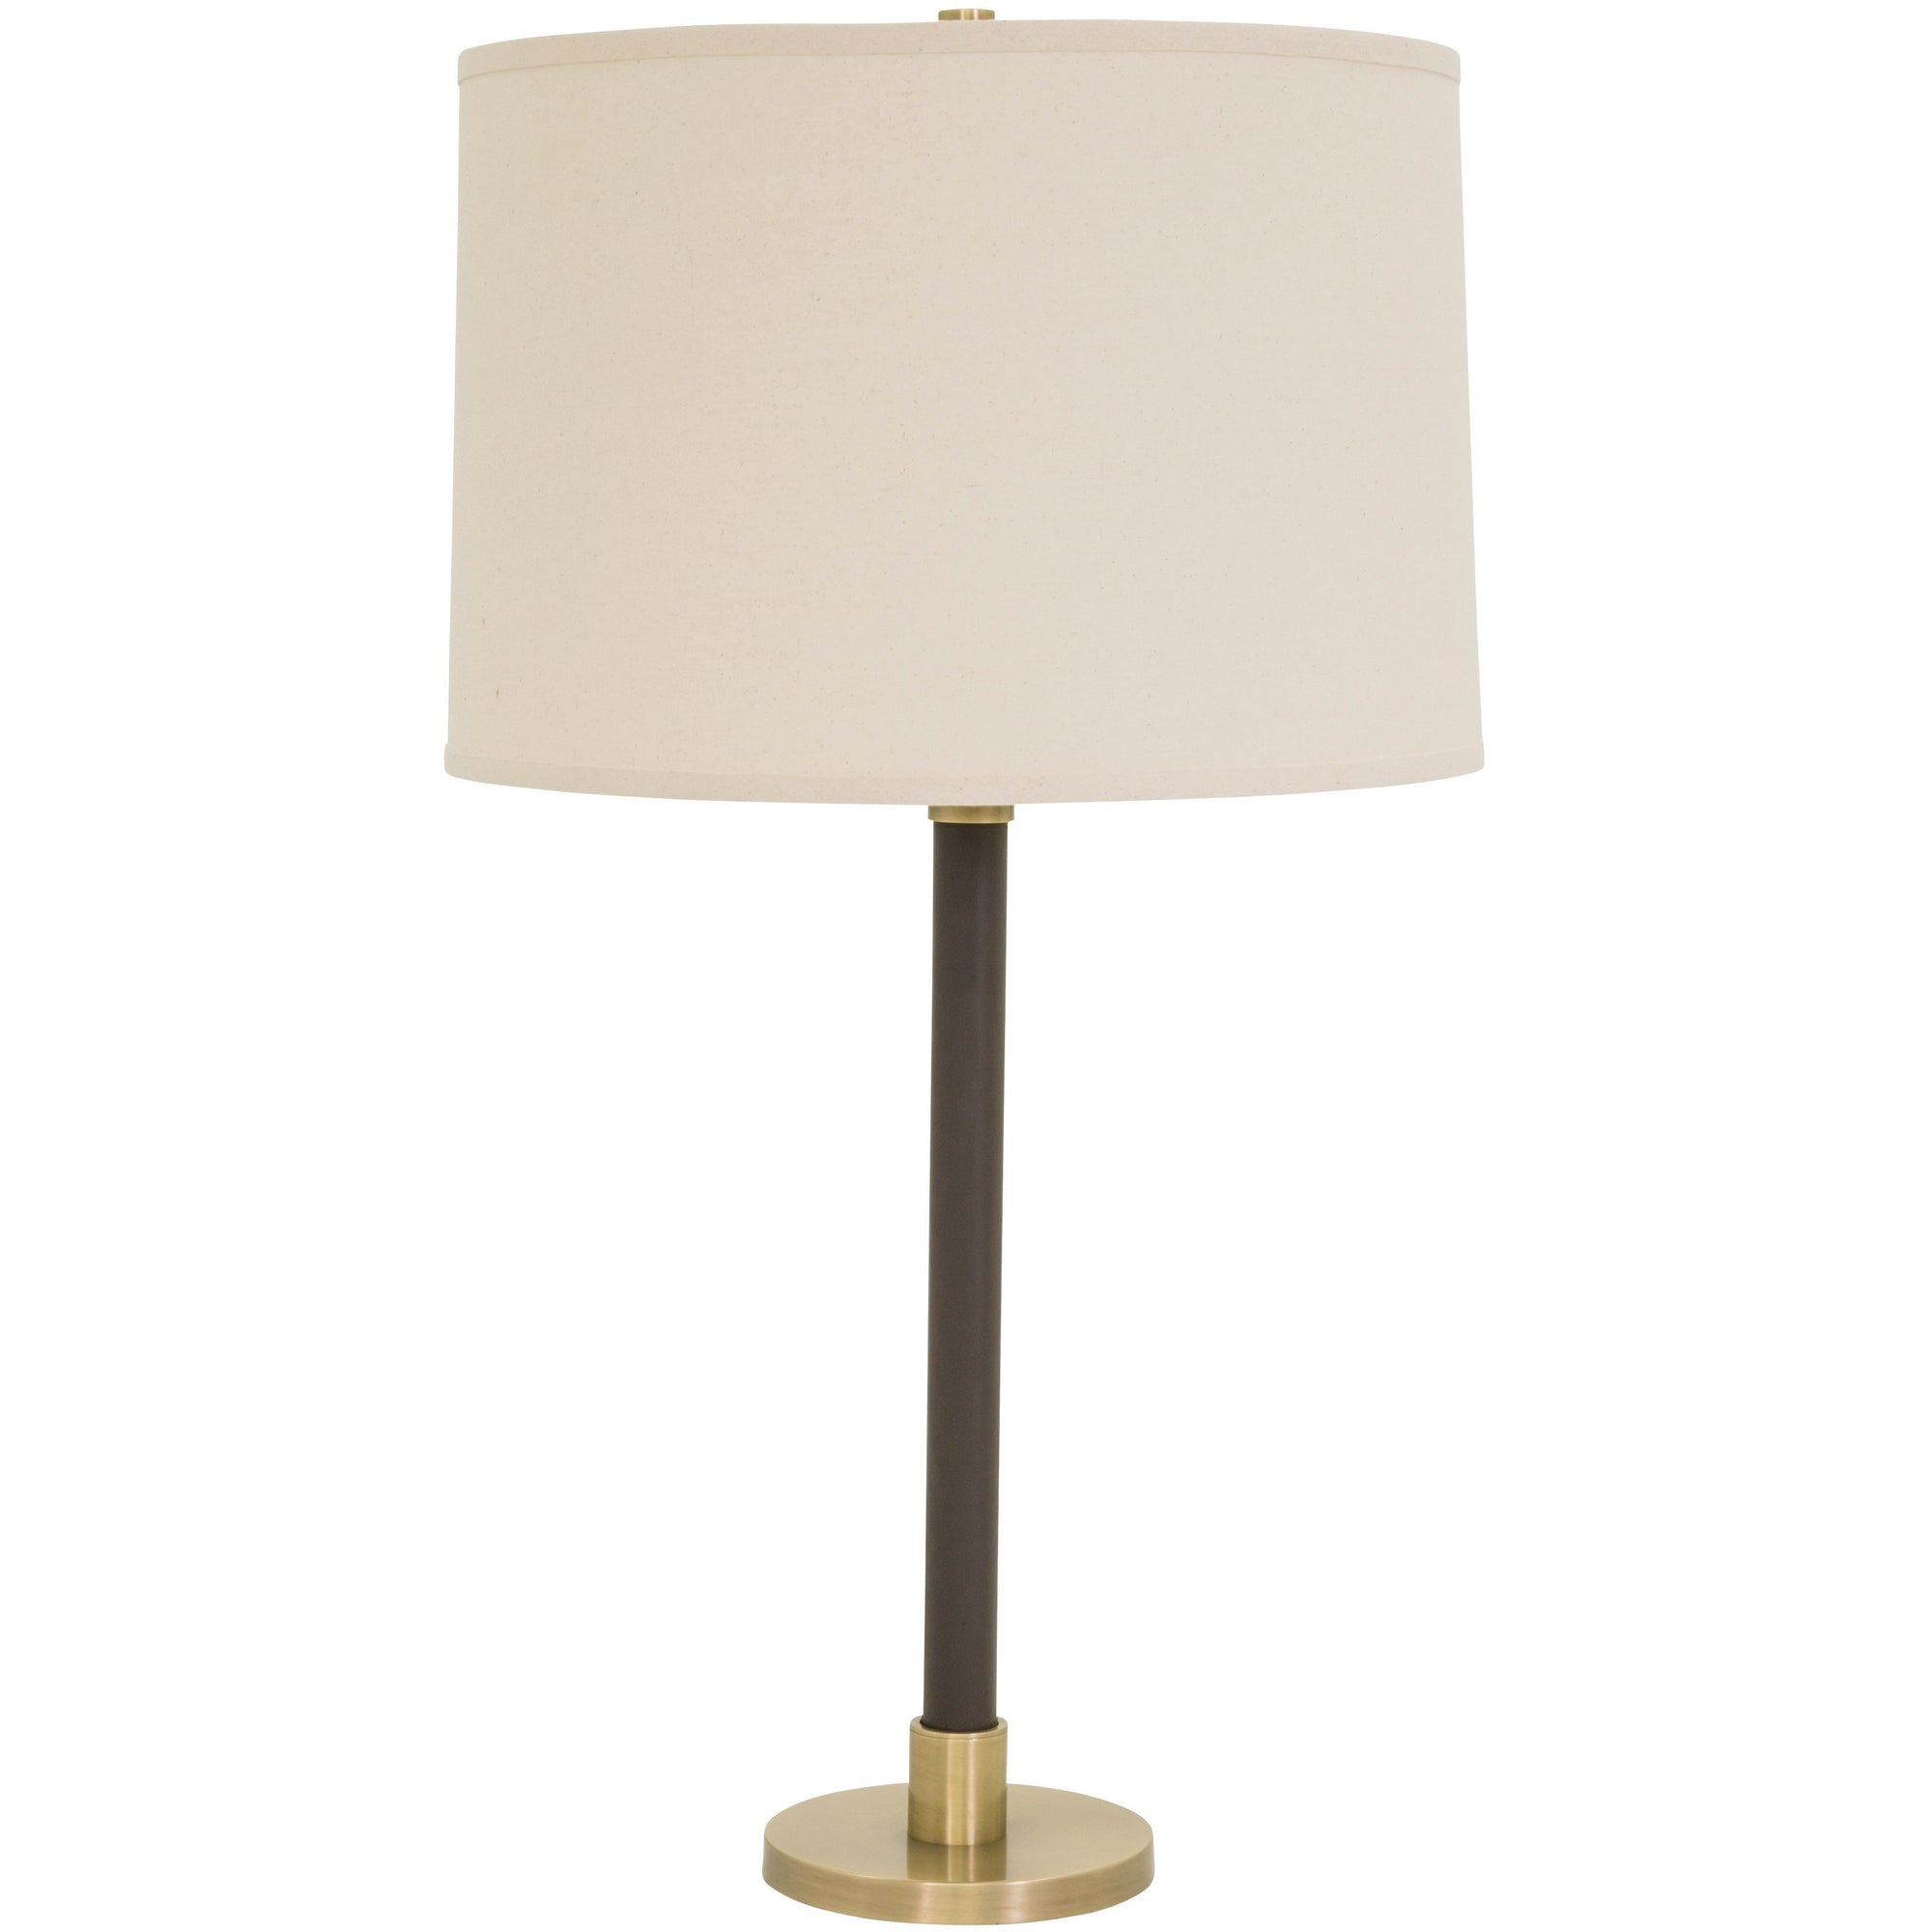 House Of Troy Table Lamps Hardwick Six Way Table Lamp by House Of Troy H553-AB